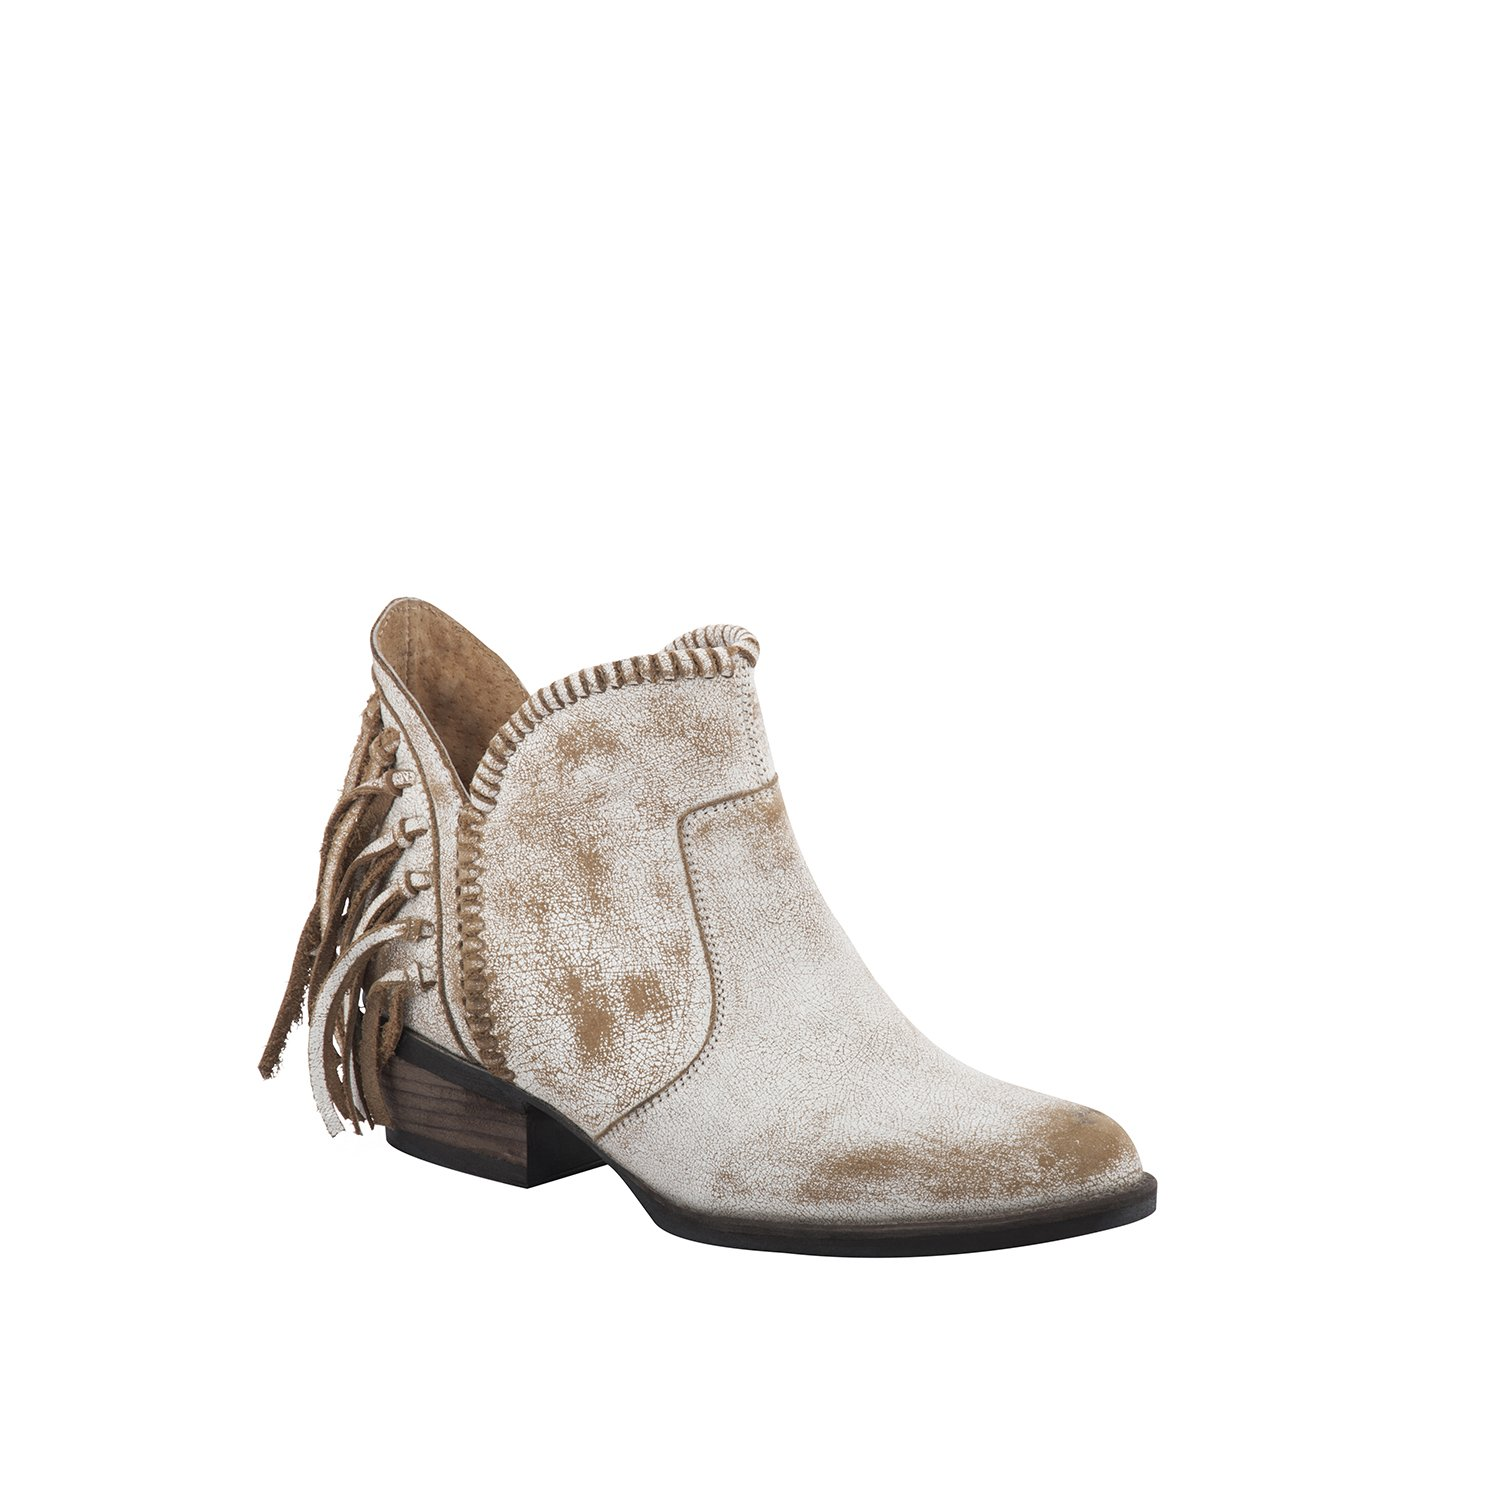 Corral Urban Women's Back Fringe Braided Top Distressed White Leather Shortie Cowboy Boots B01IFL64LO 8 B(M) US|White